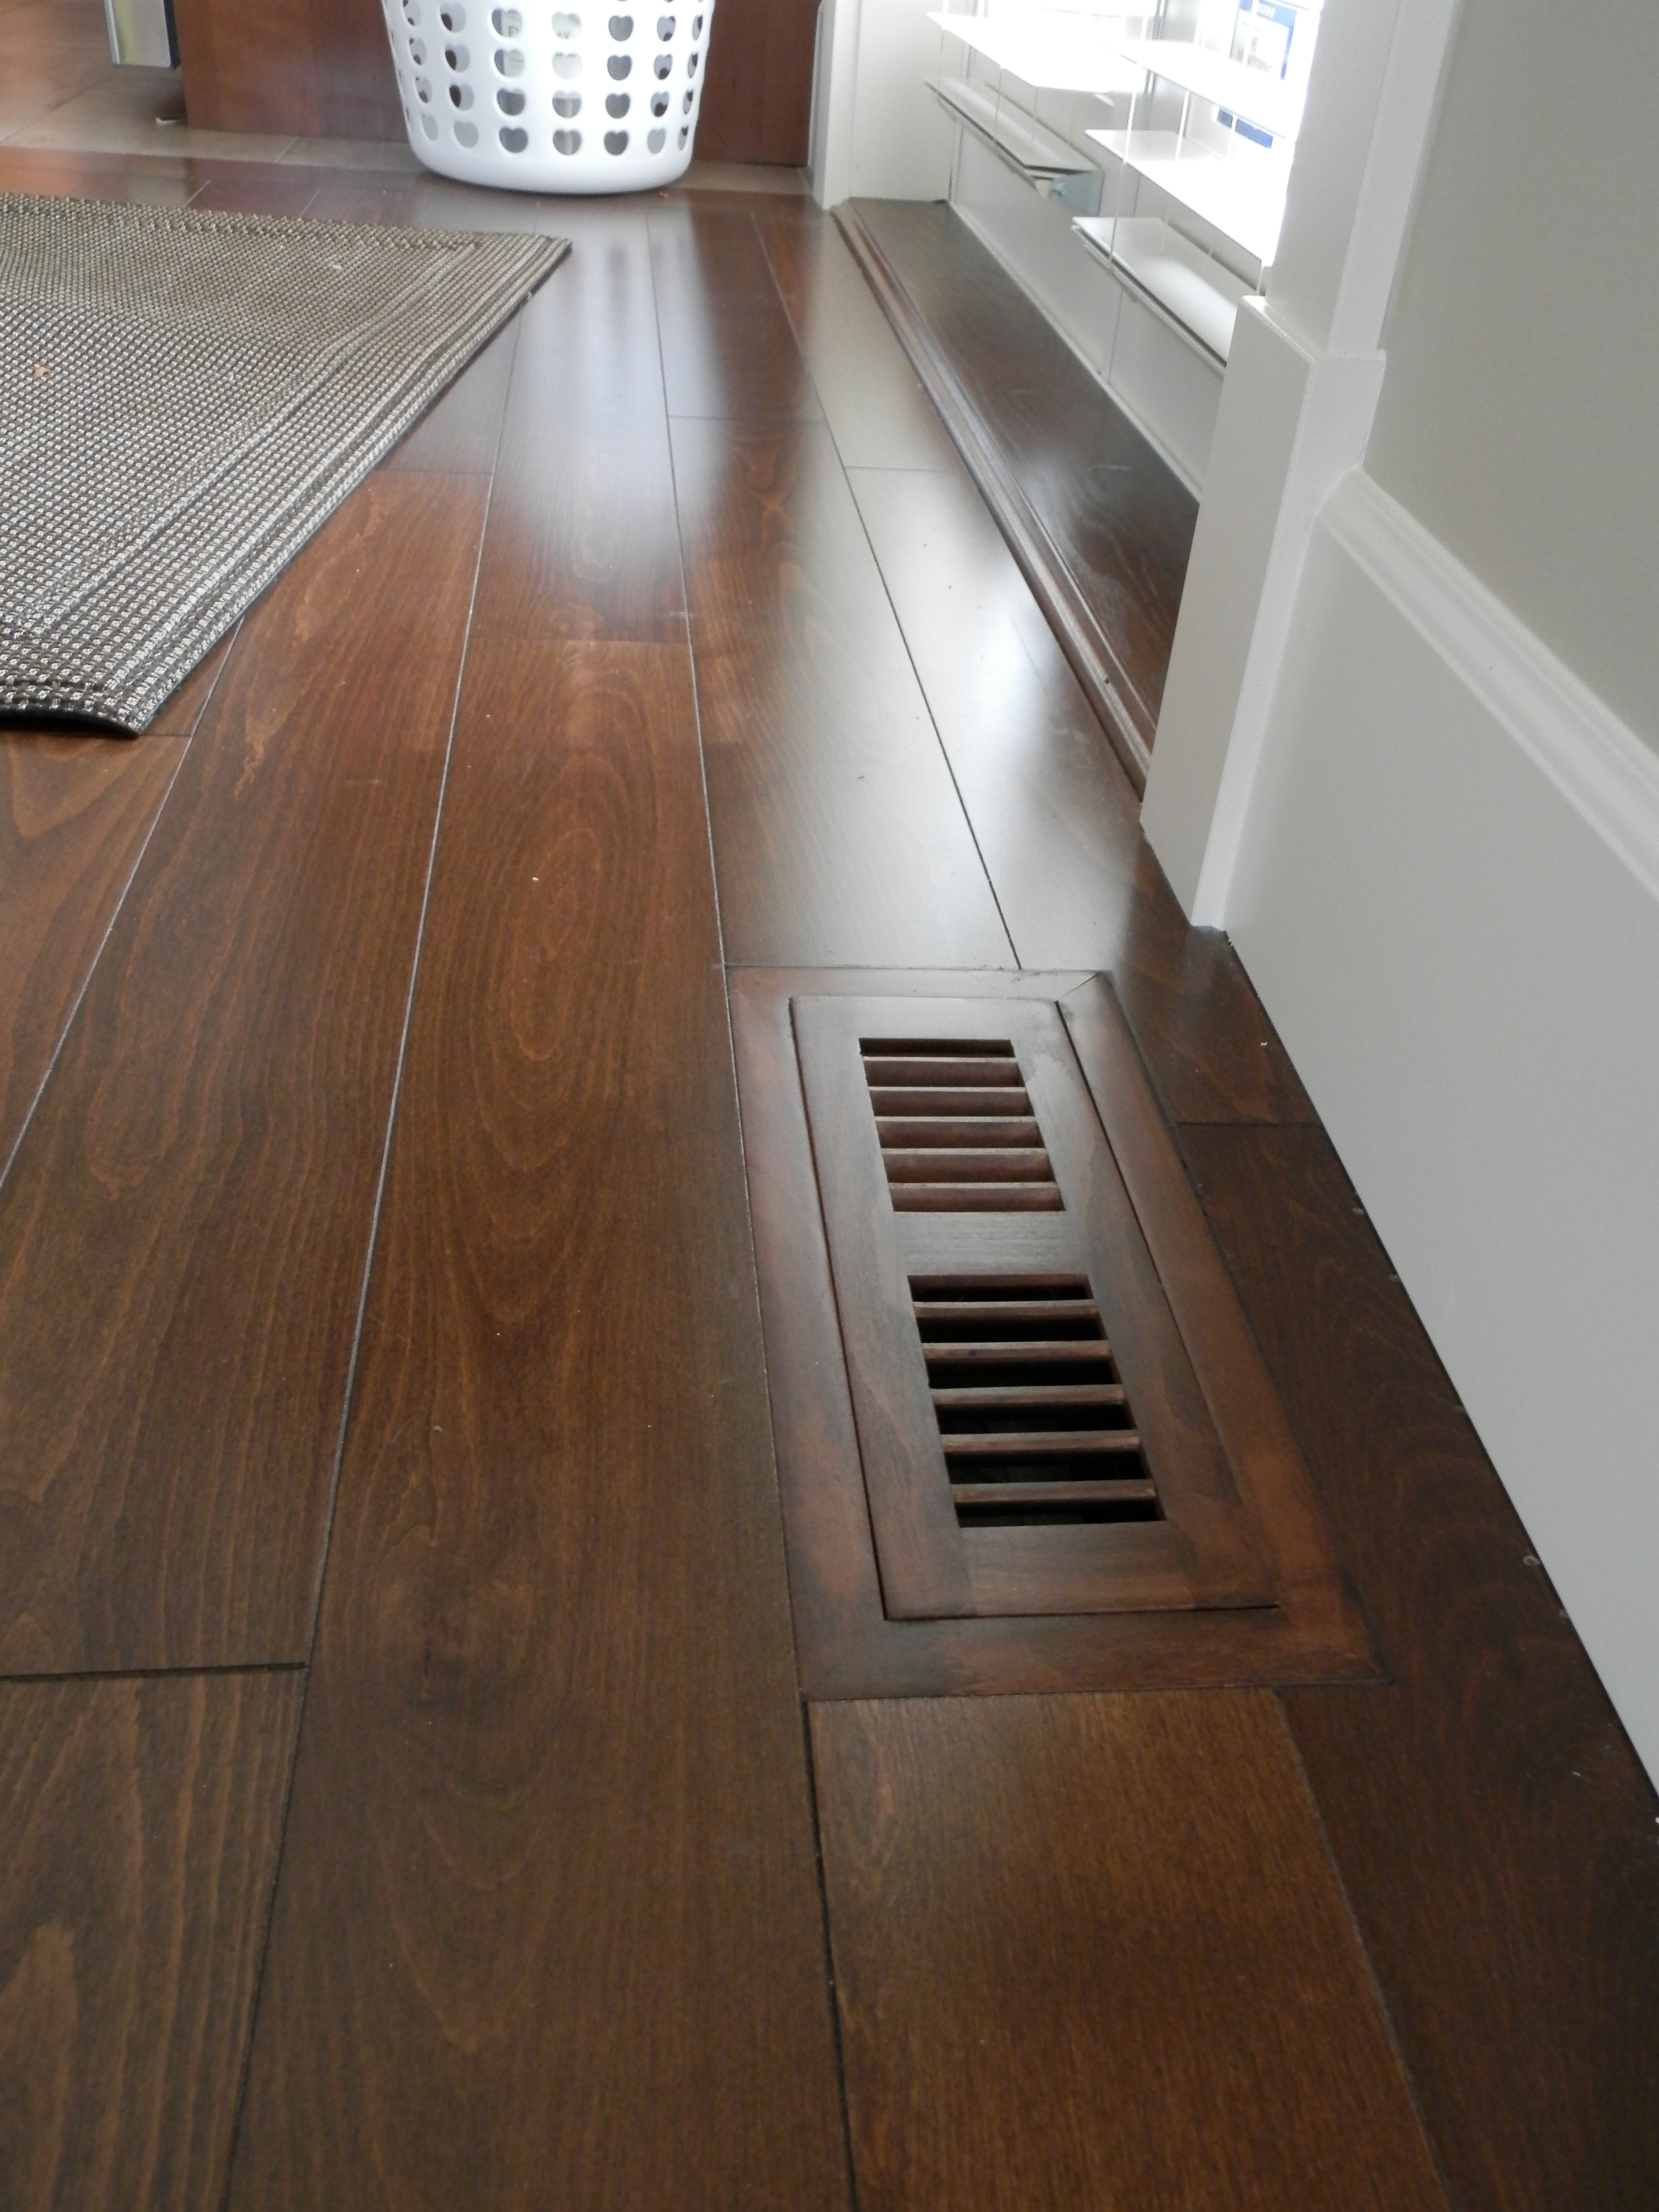 Photo Gallery Of Laminate Hardwood And Carpet Installation 4866 Rupert St Vancouver Bc